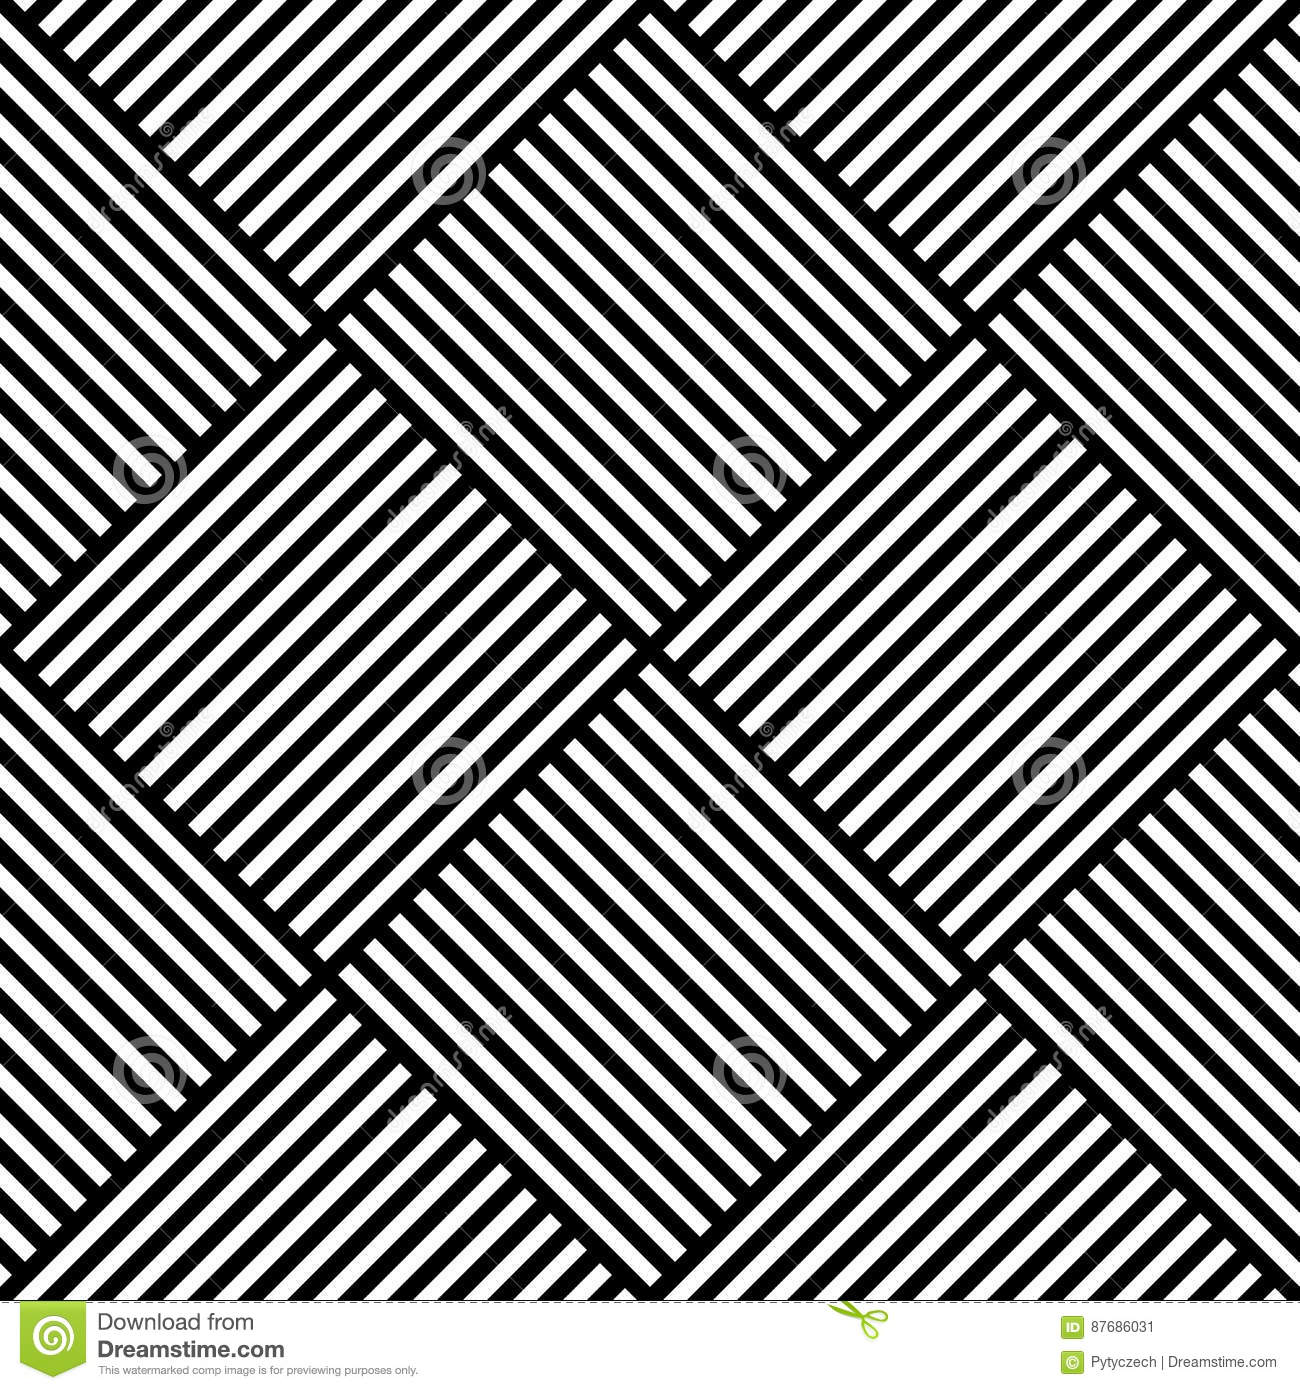 Designs With Lines : Black vector geometric texture with crossed lines cartoon